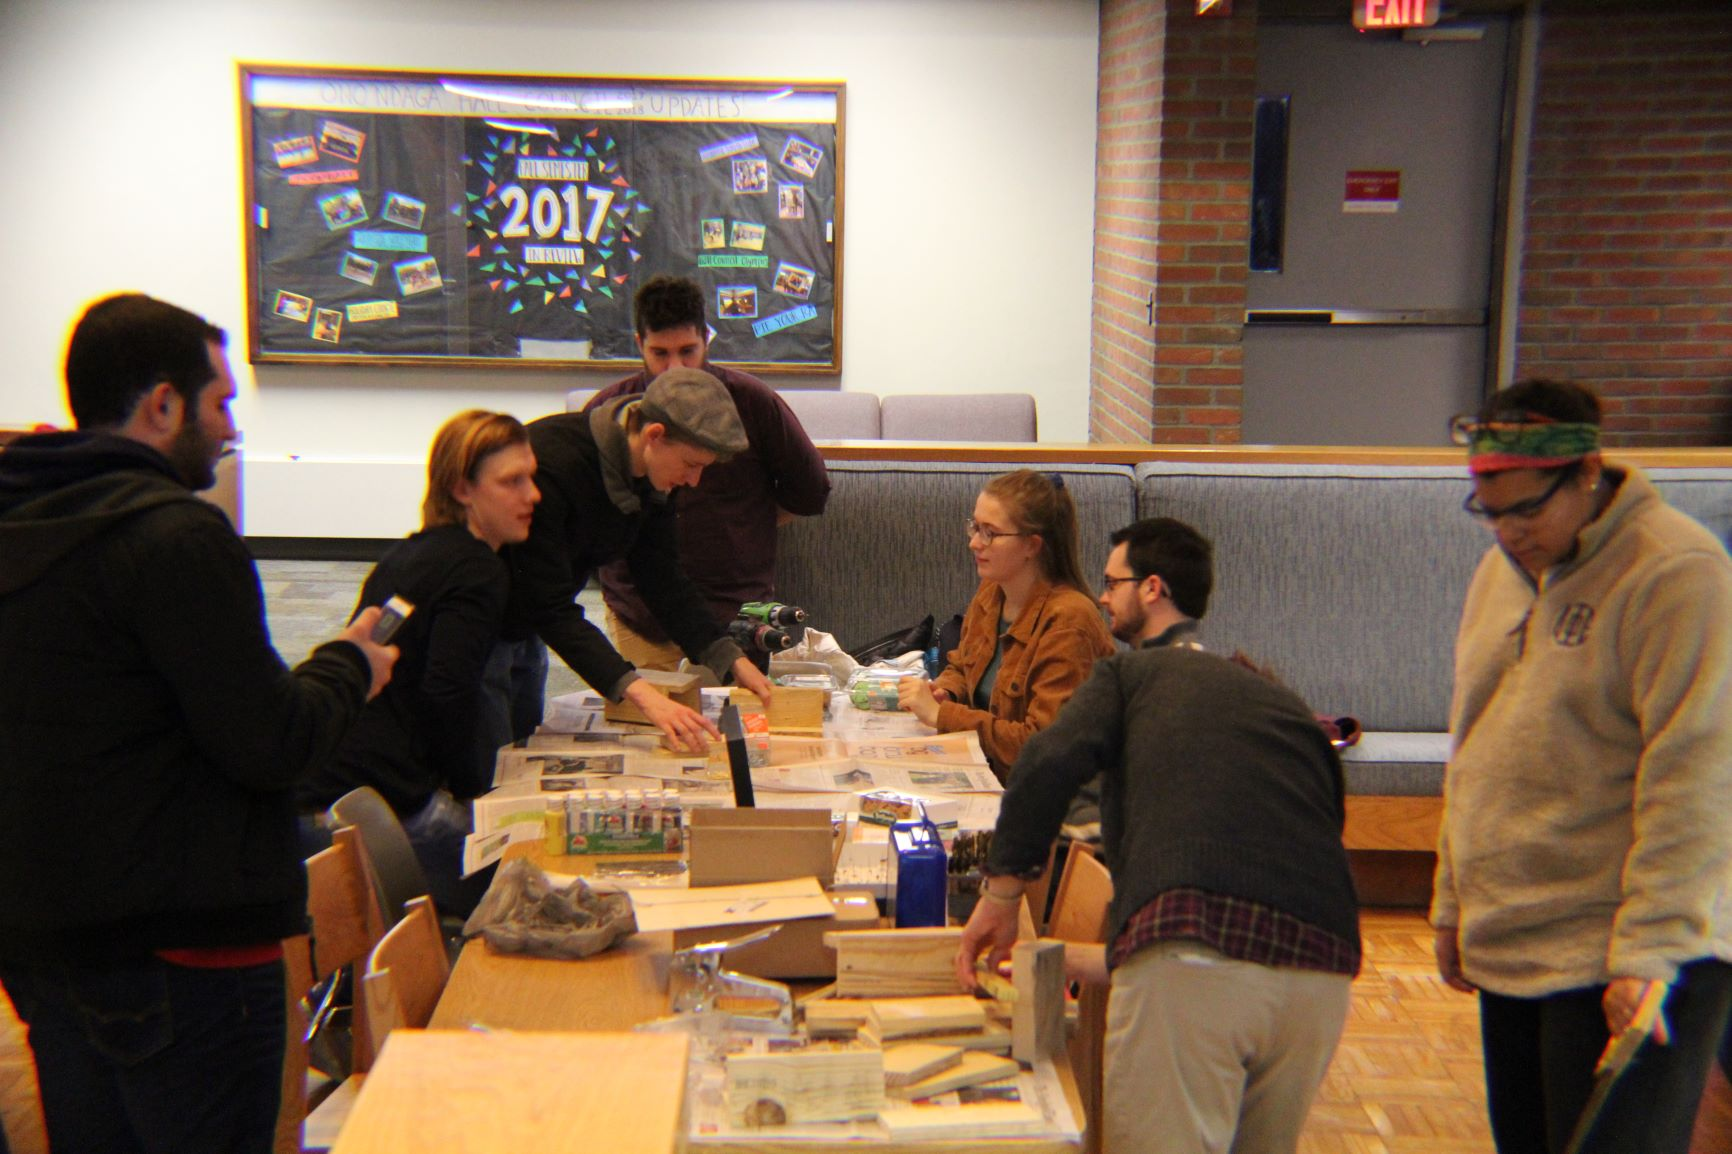 Members of the Arboretum Group work with students to create houses for bees